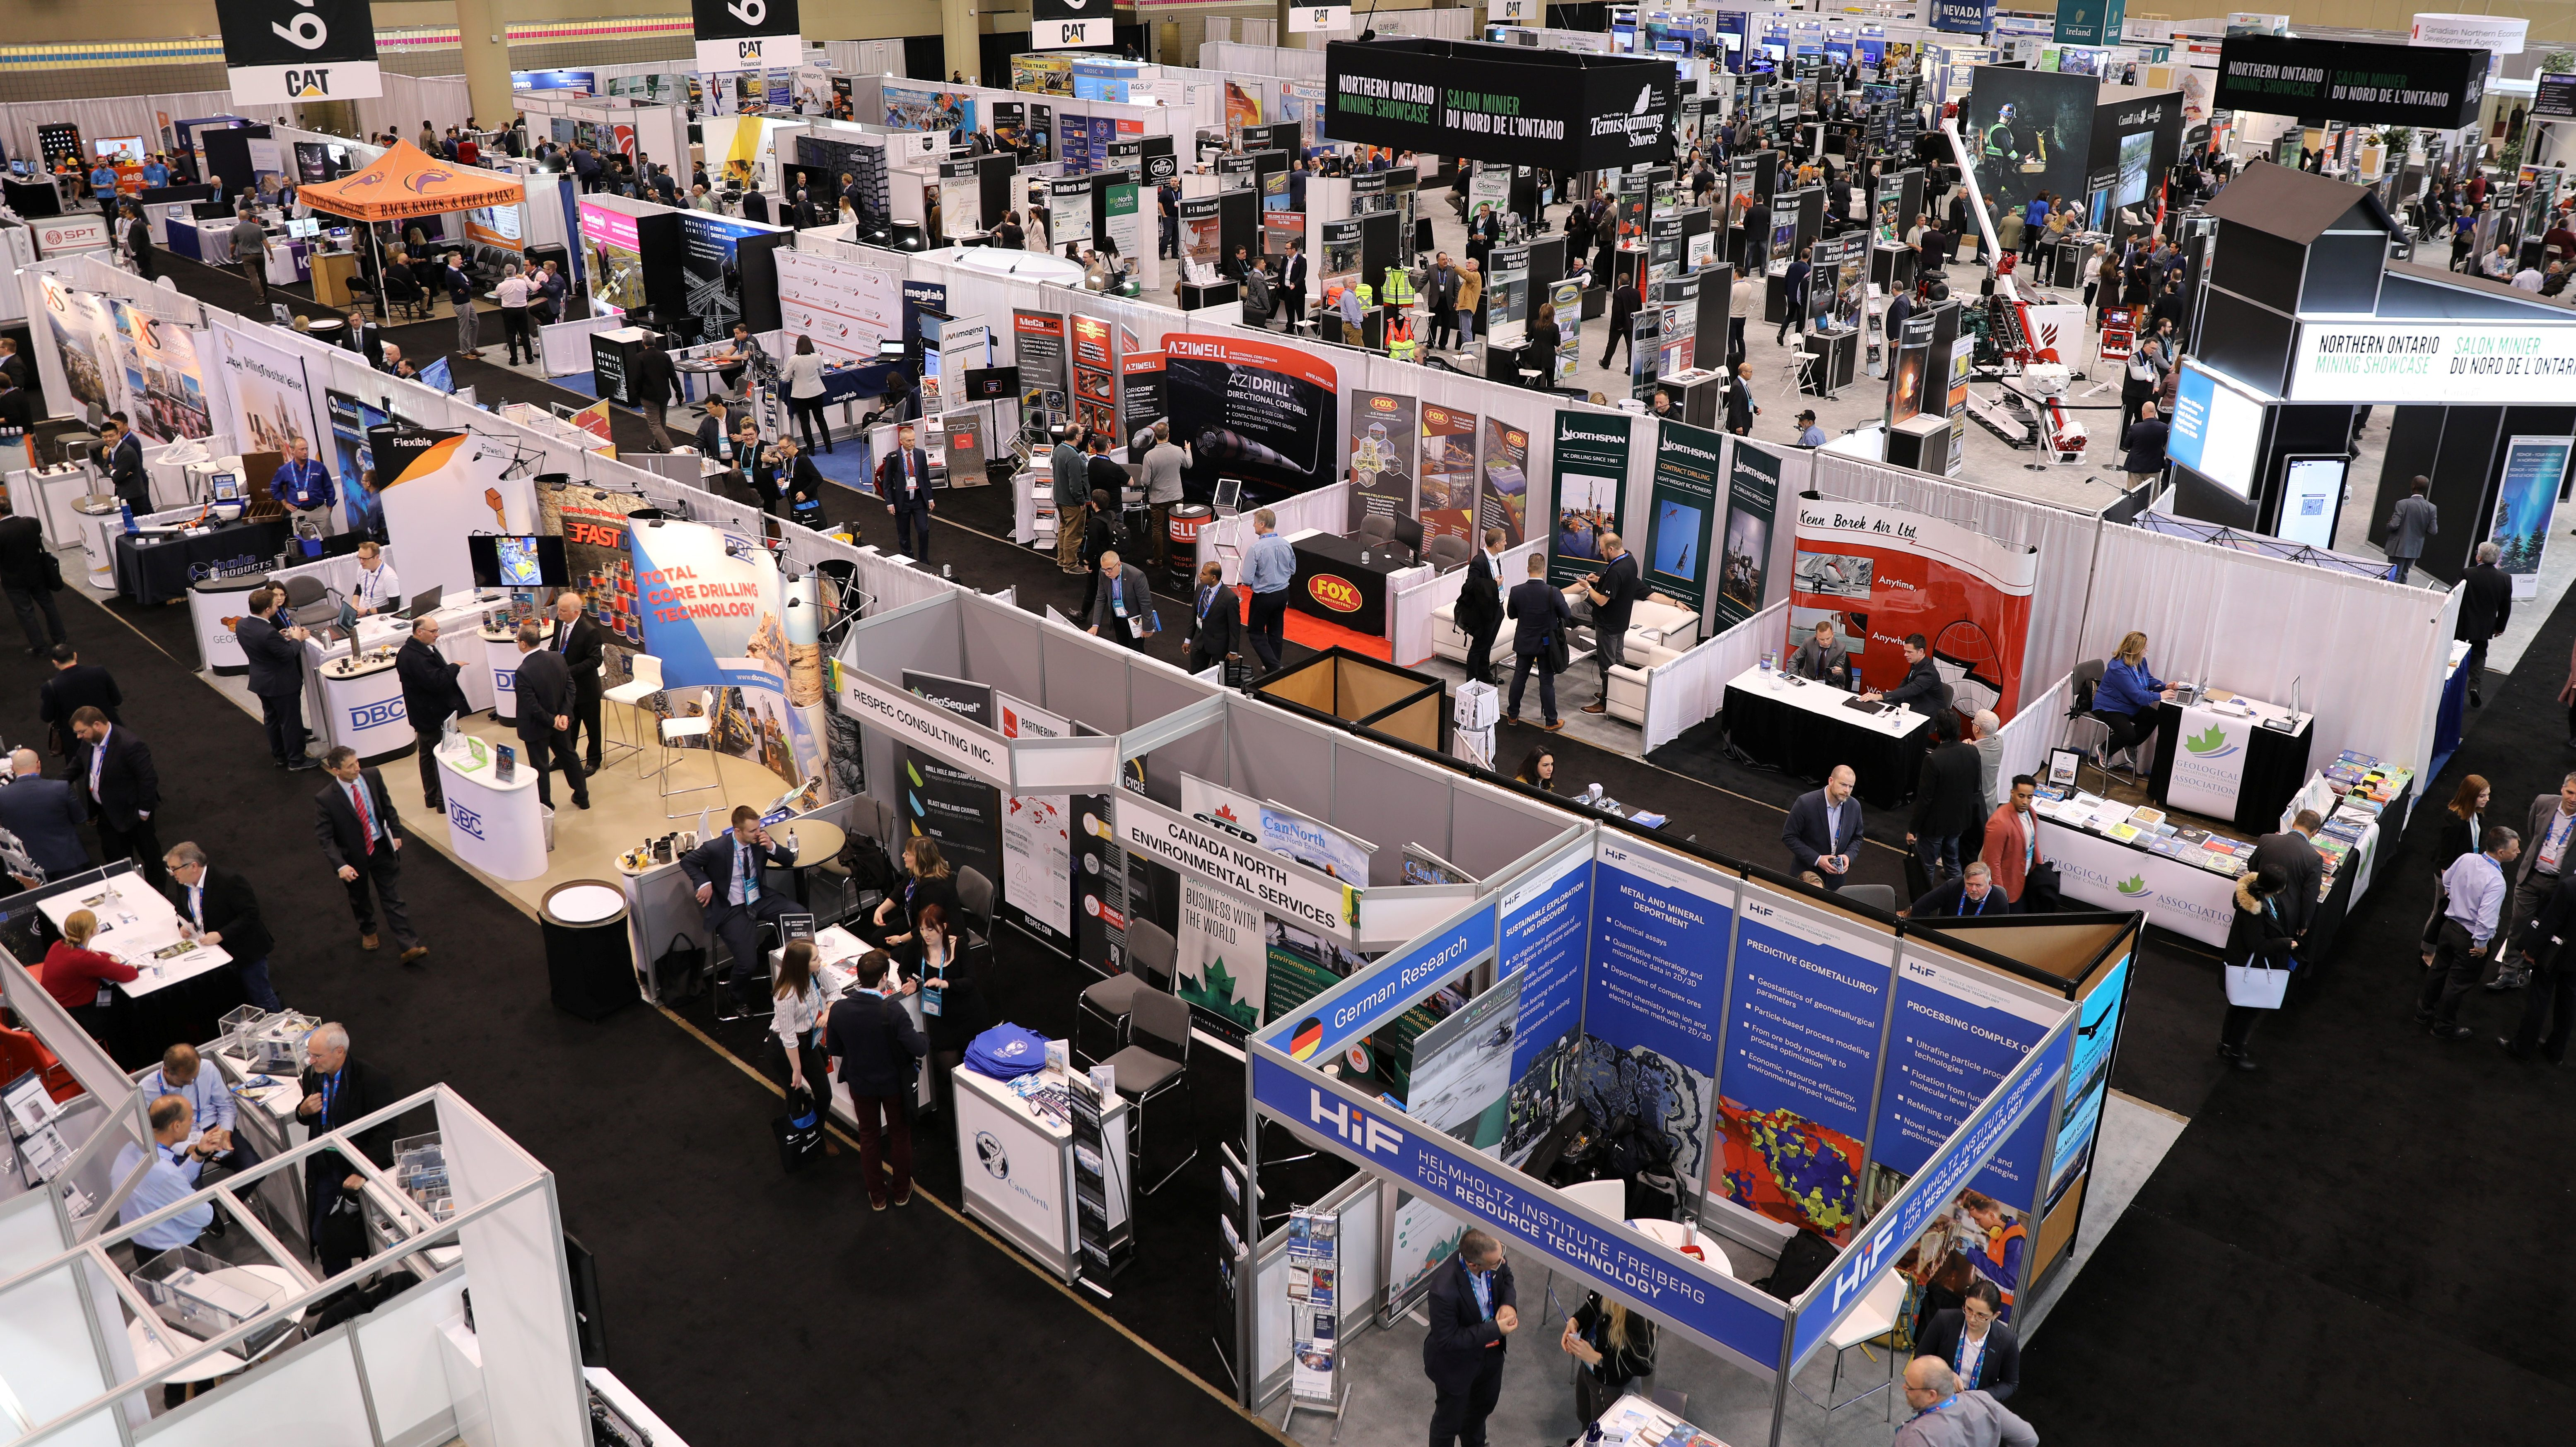 Visitors crowd booths at at the Prospectors and Developers Association of Canada (PDAC) annual conference in Toronto, Ontario, Canada March 1, 2020.